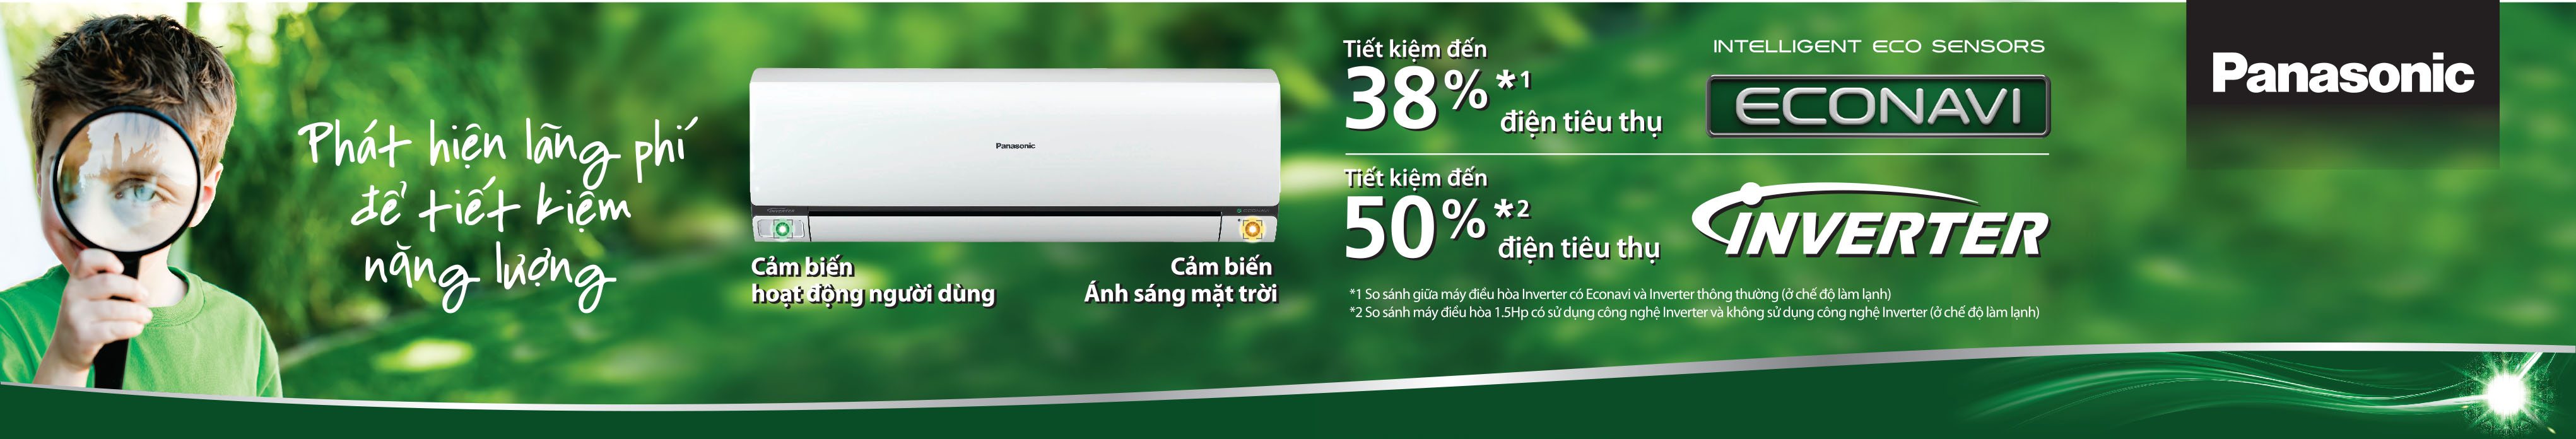 banner daikin